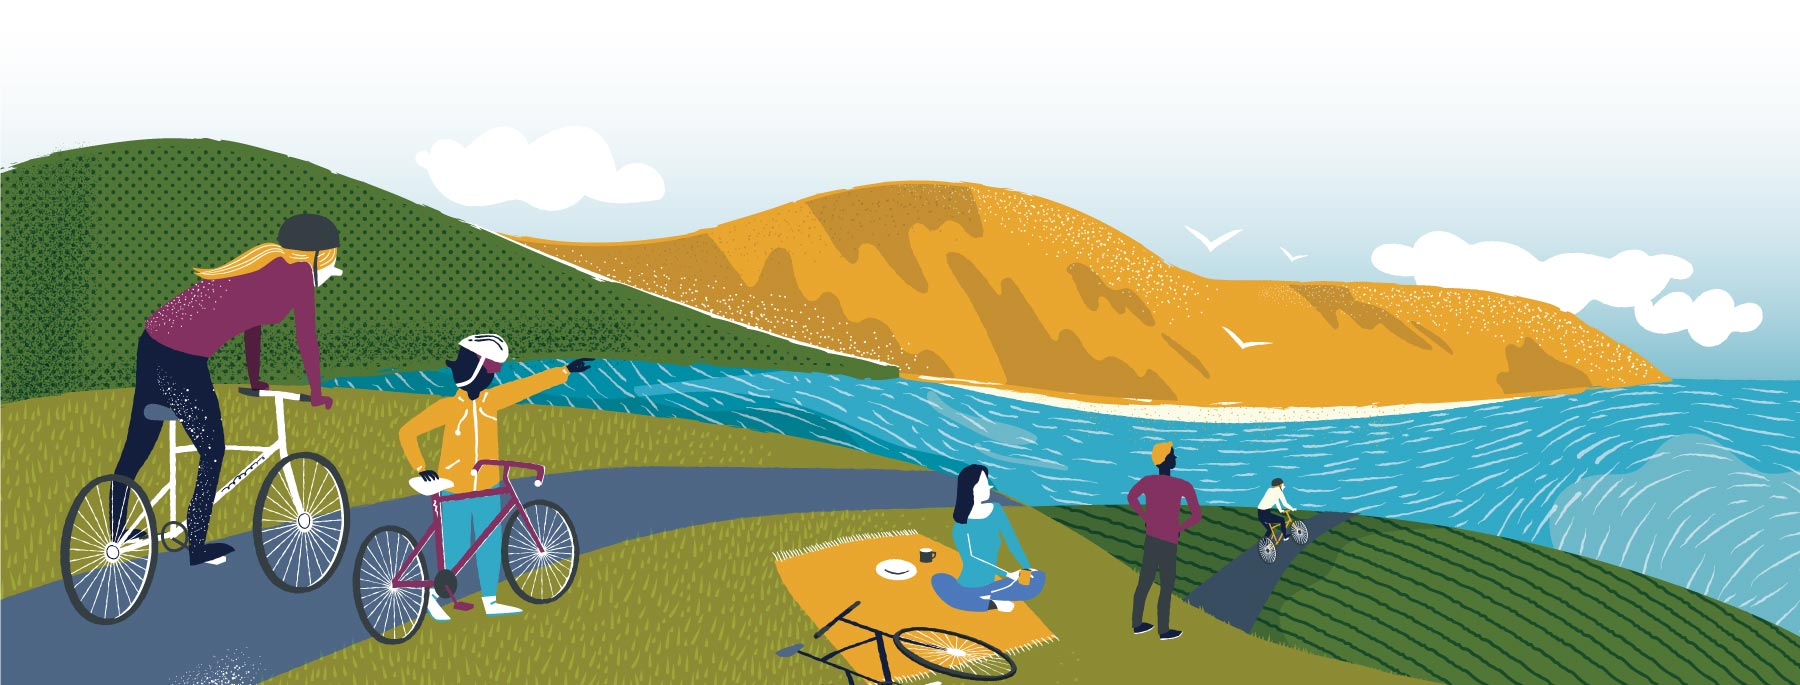 Alternative Colour Illustration for Barra Bike Hire